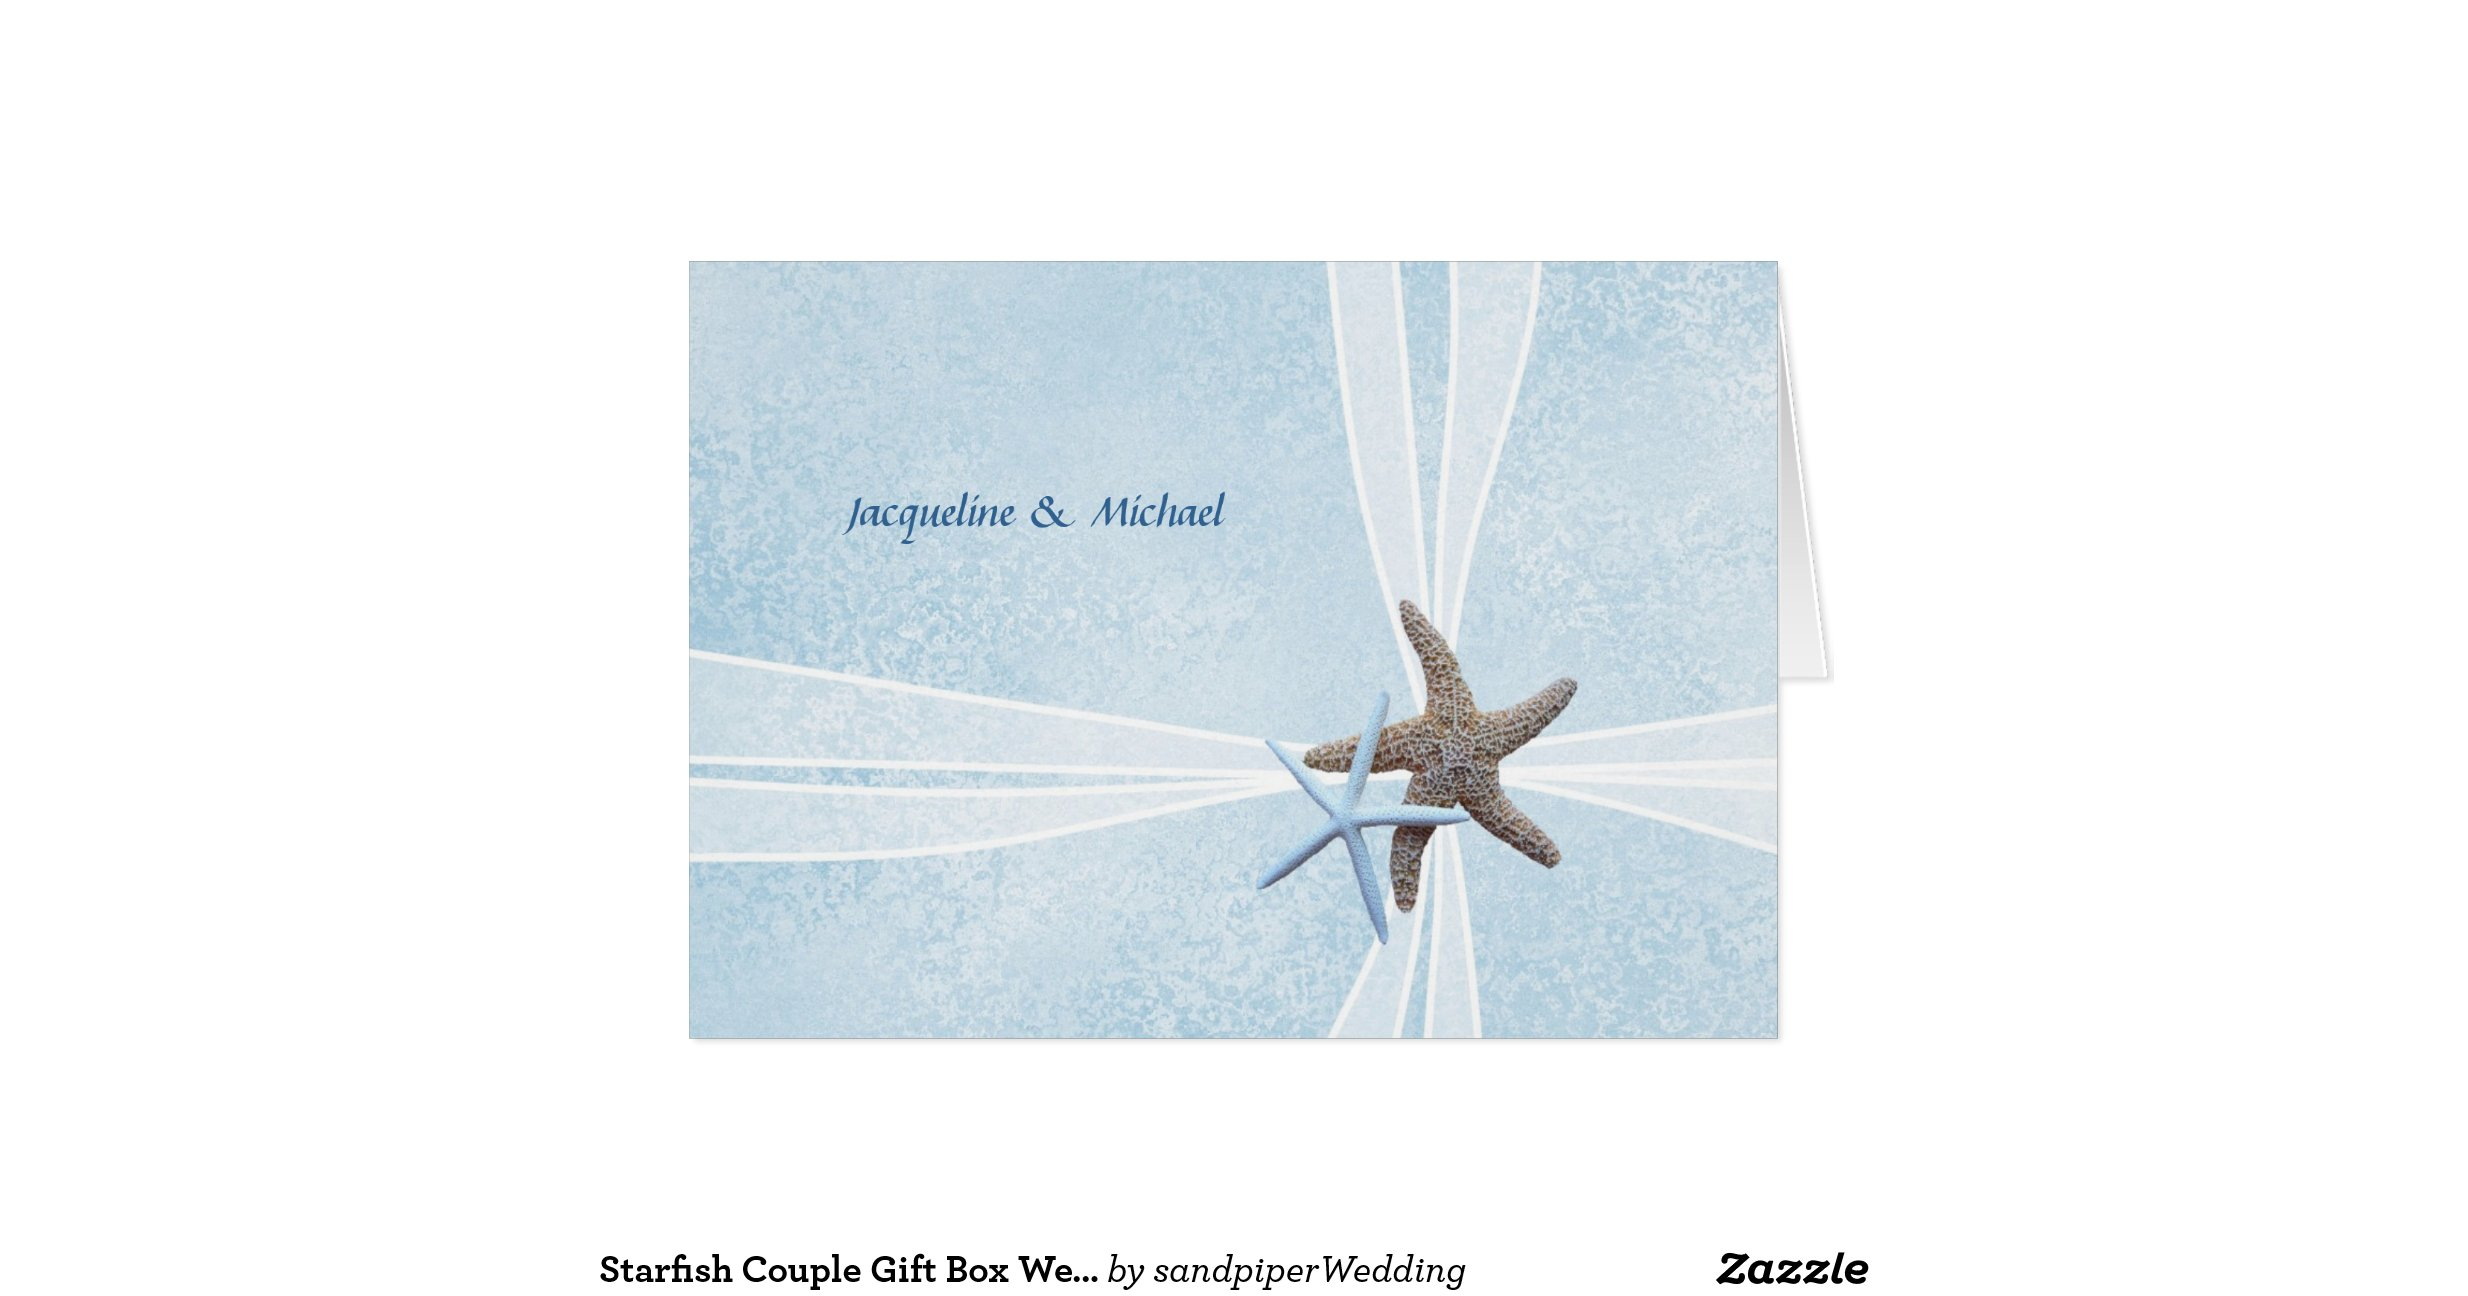 starfish_couple_gift_box_wedding_thank_you_cards ...